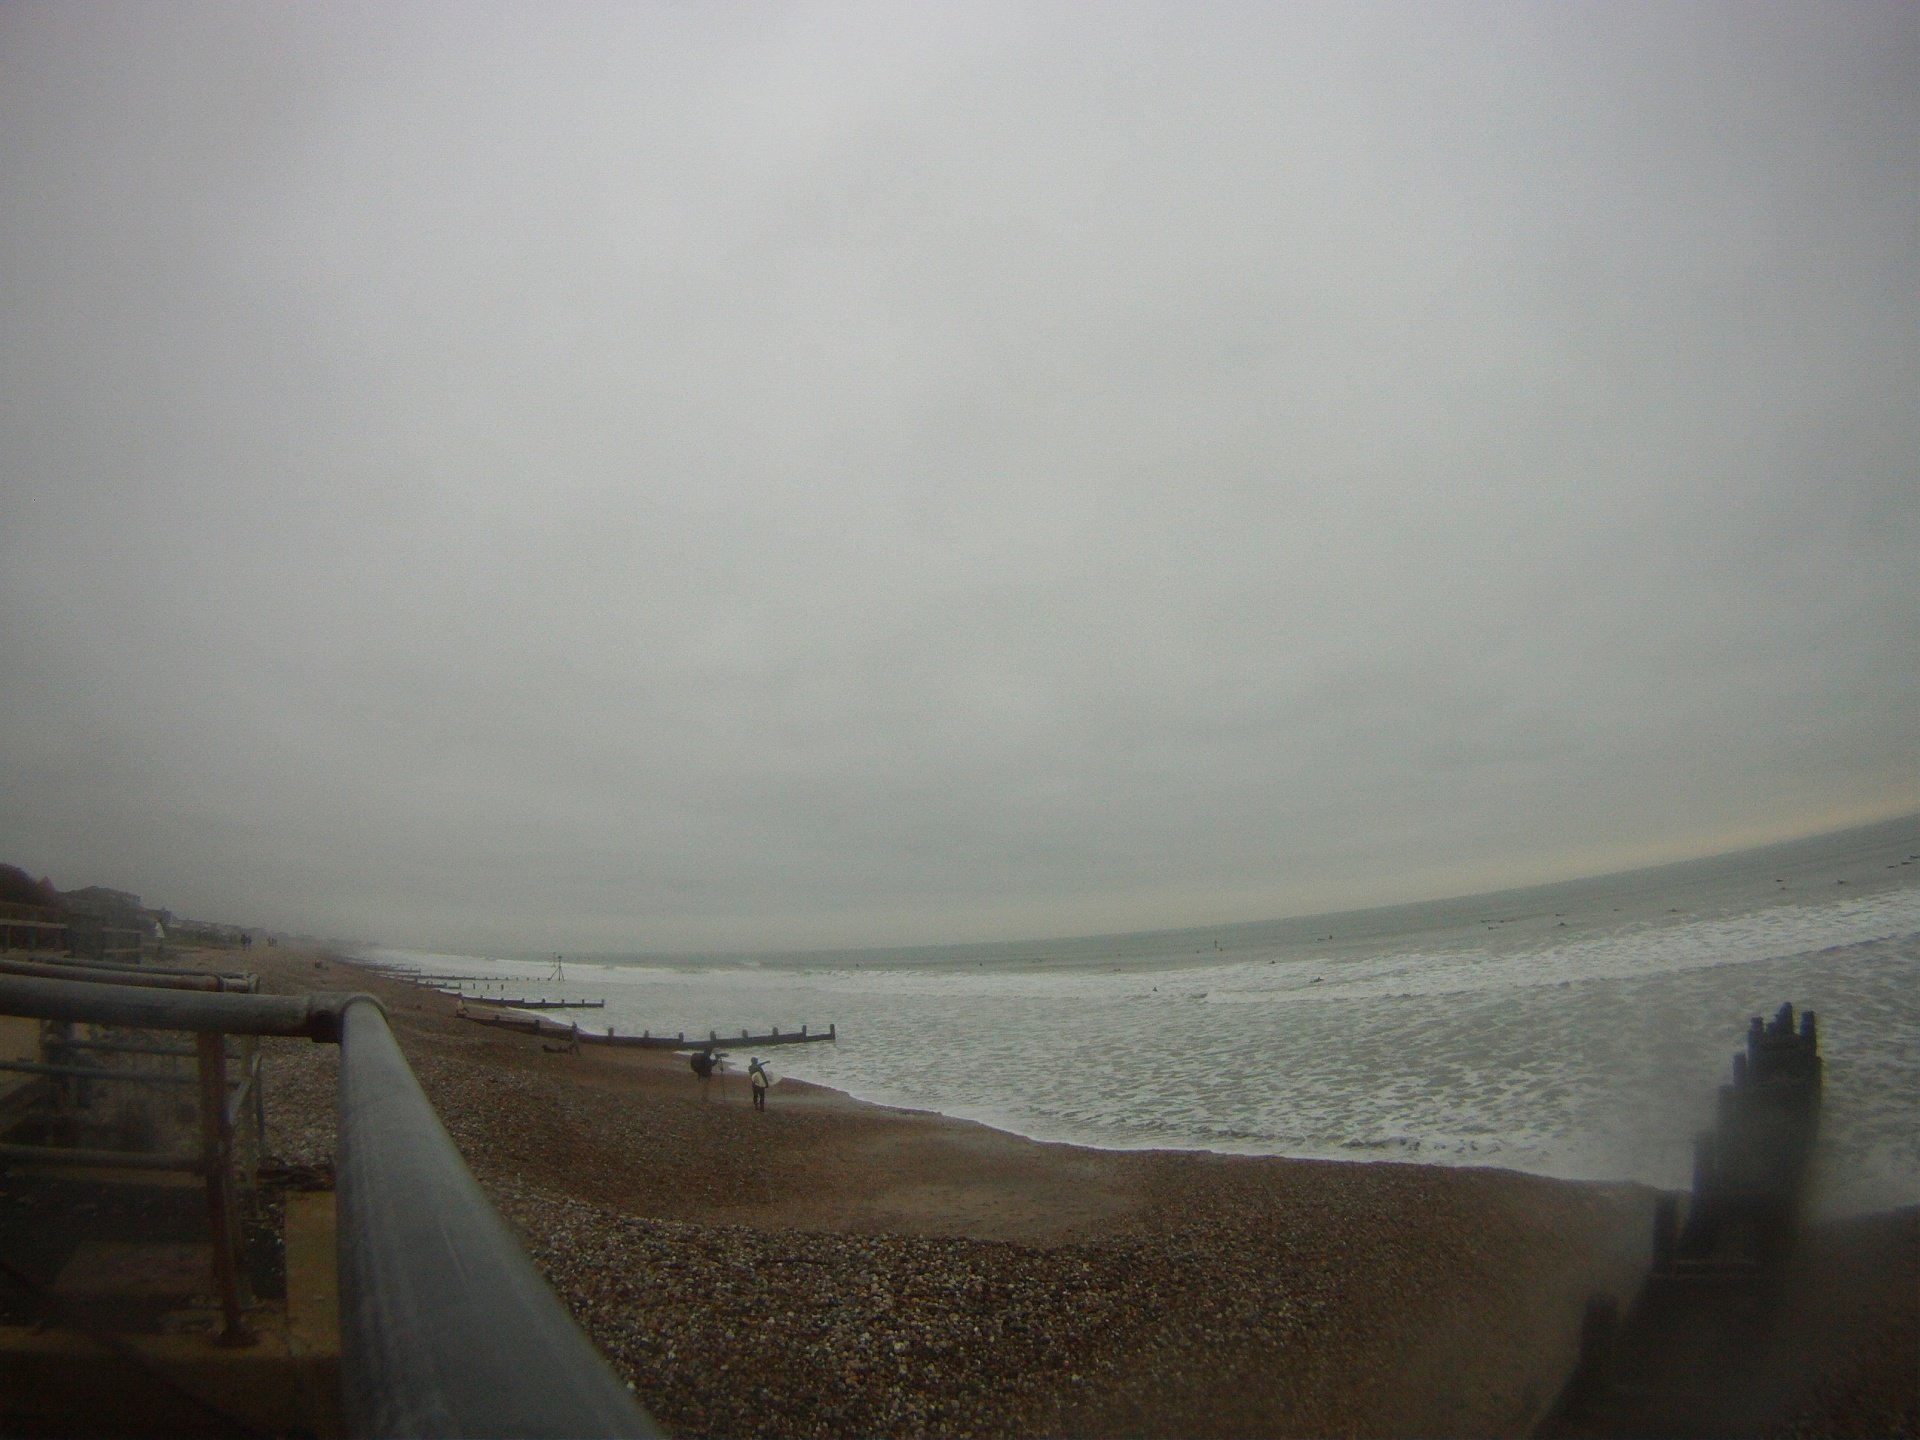 williammurray's photo of Bracklesham Bay